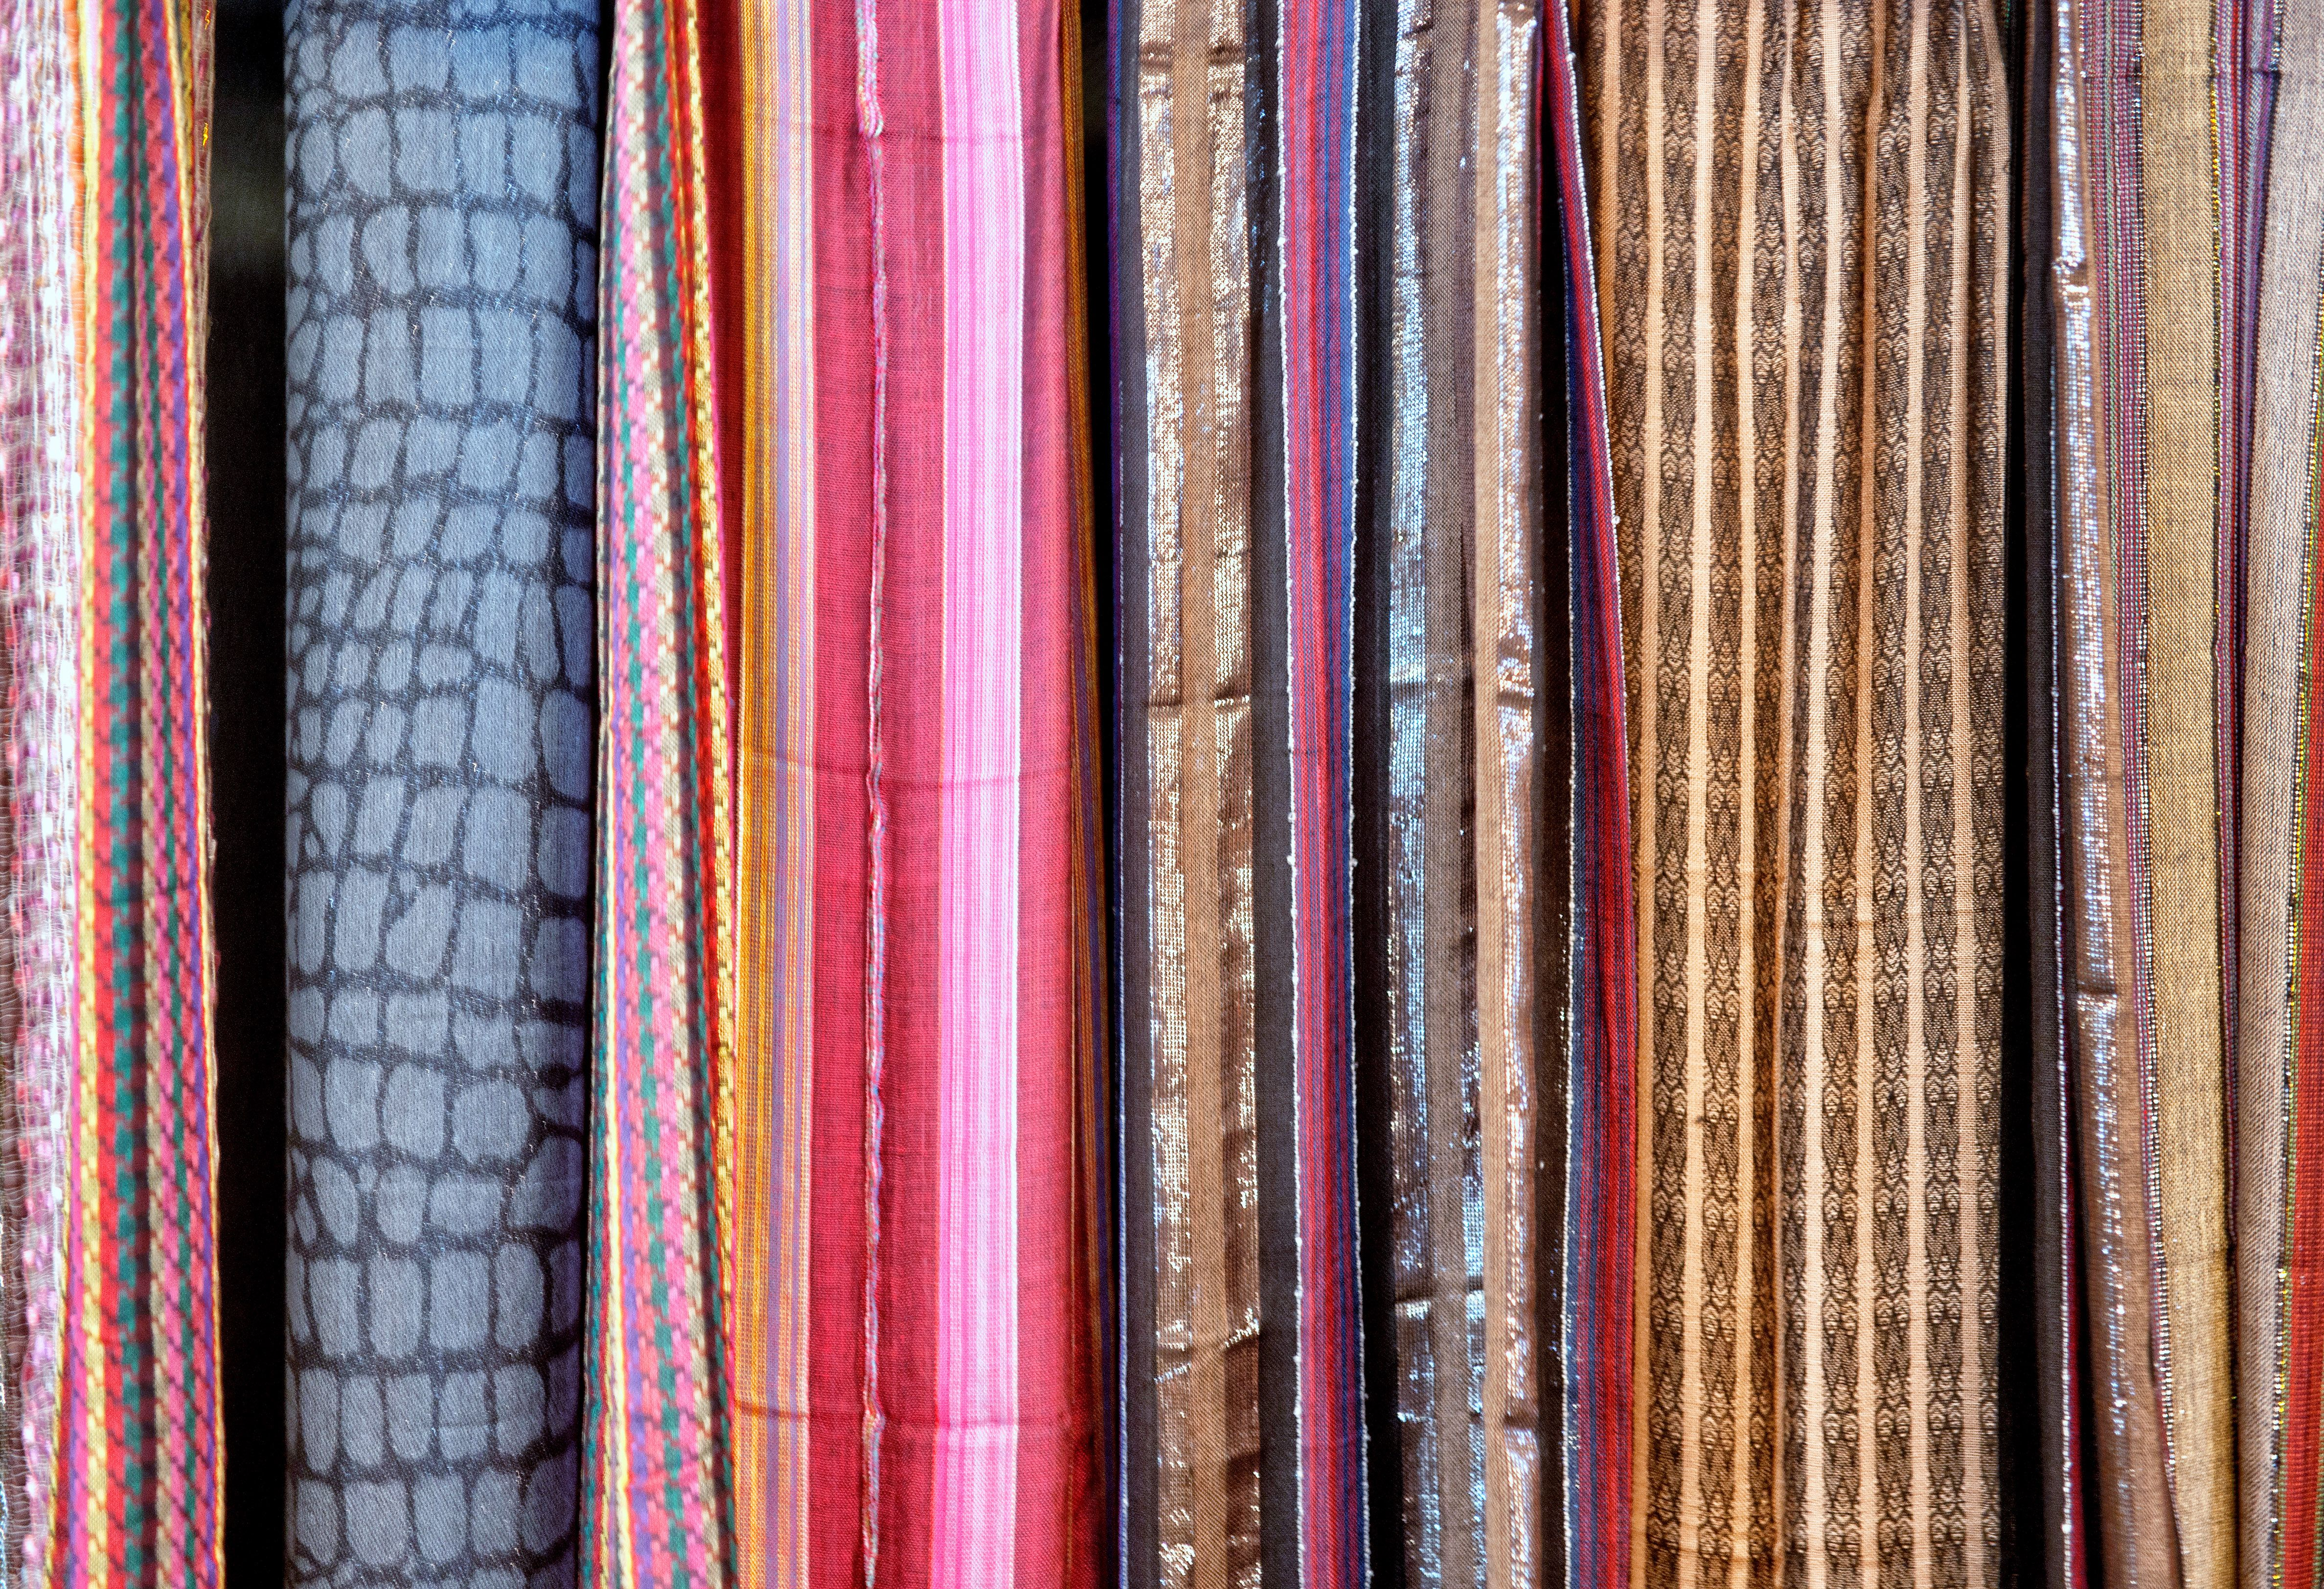 assorted fabric for sale background image - http://www.myfreetextures.com/assorted-fabric-for-sale-background-image/